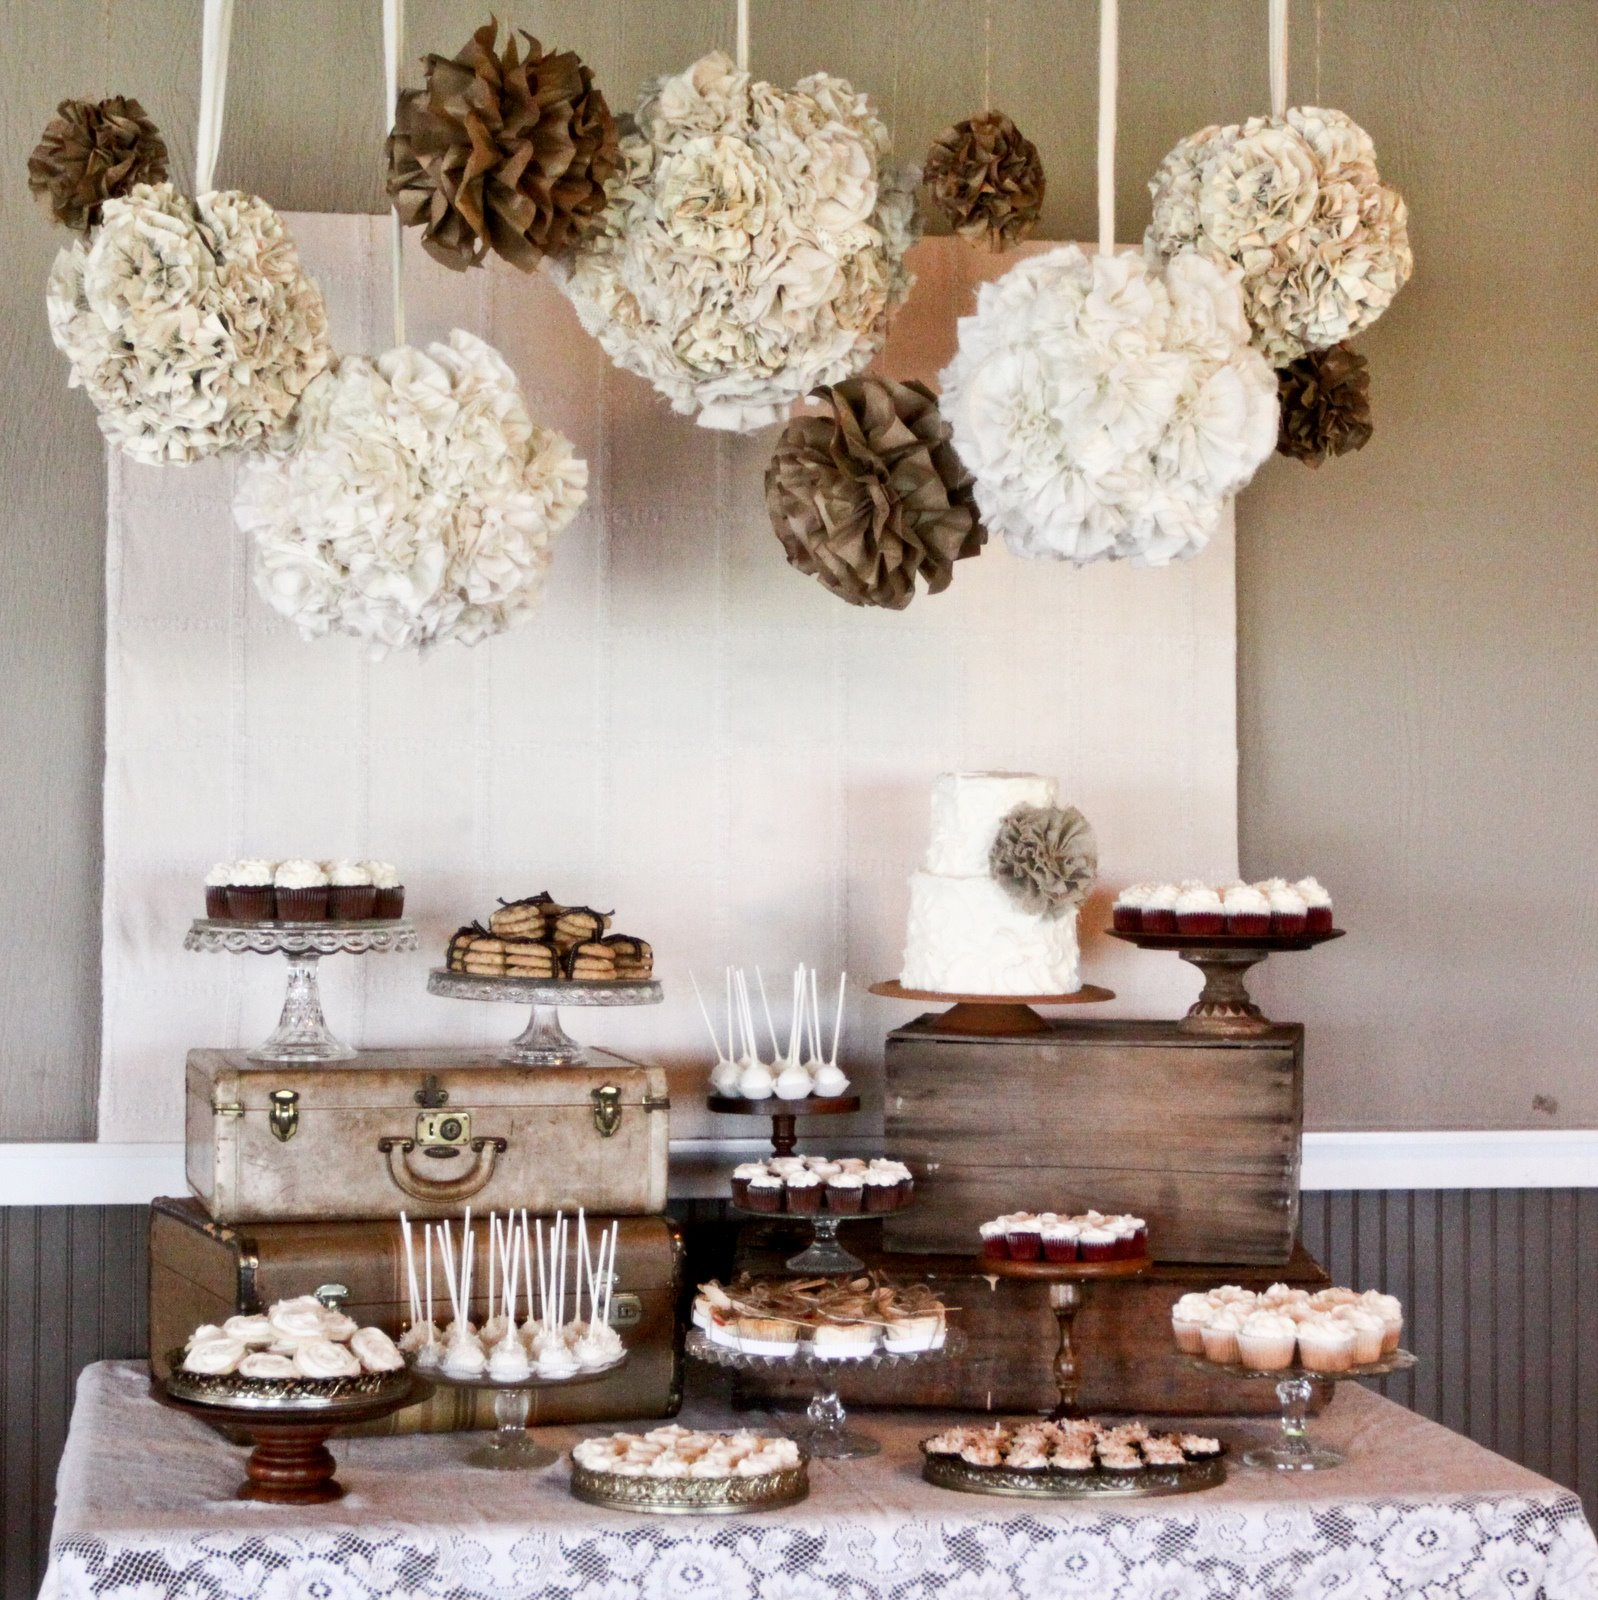 Organizitpartystyling Wedding Dessert Table Collection